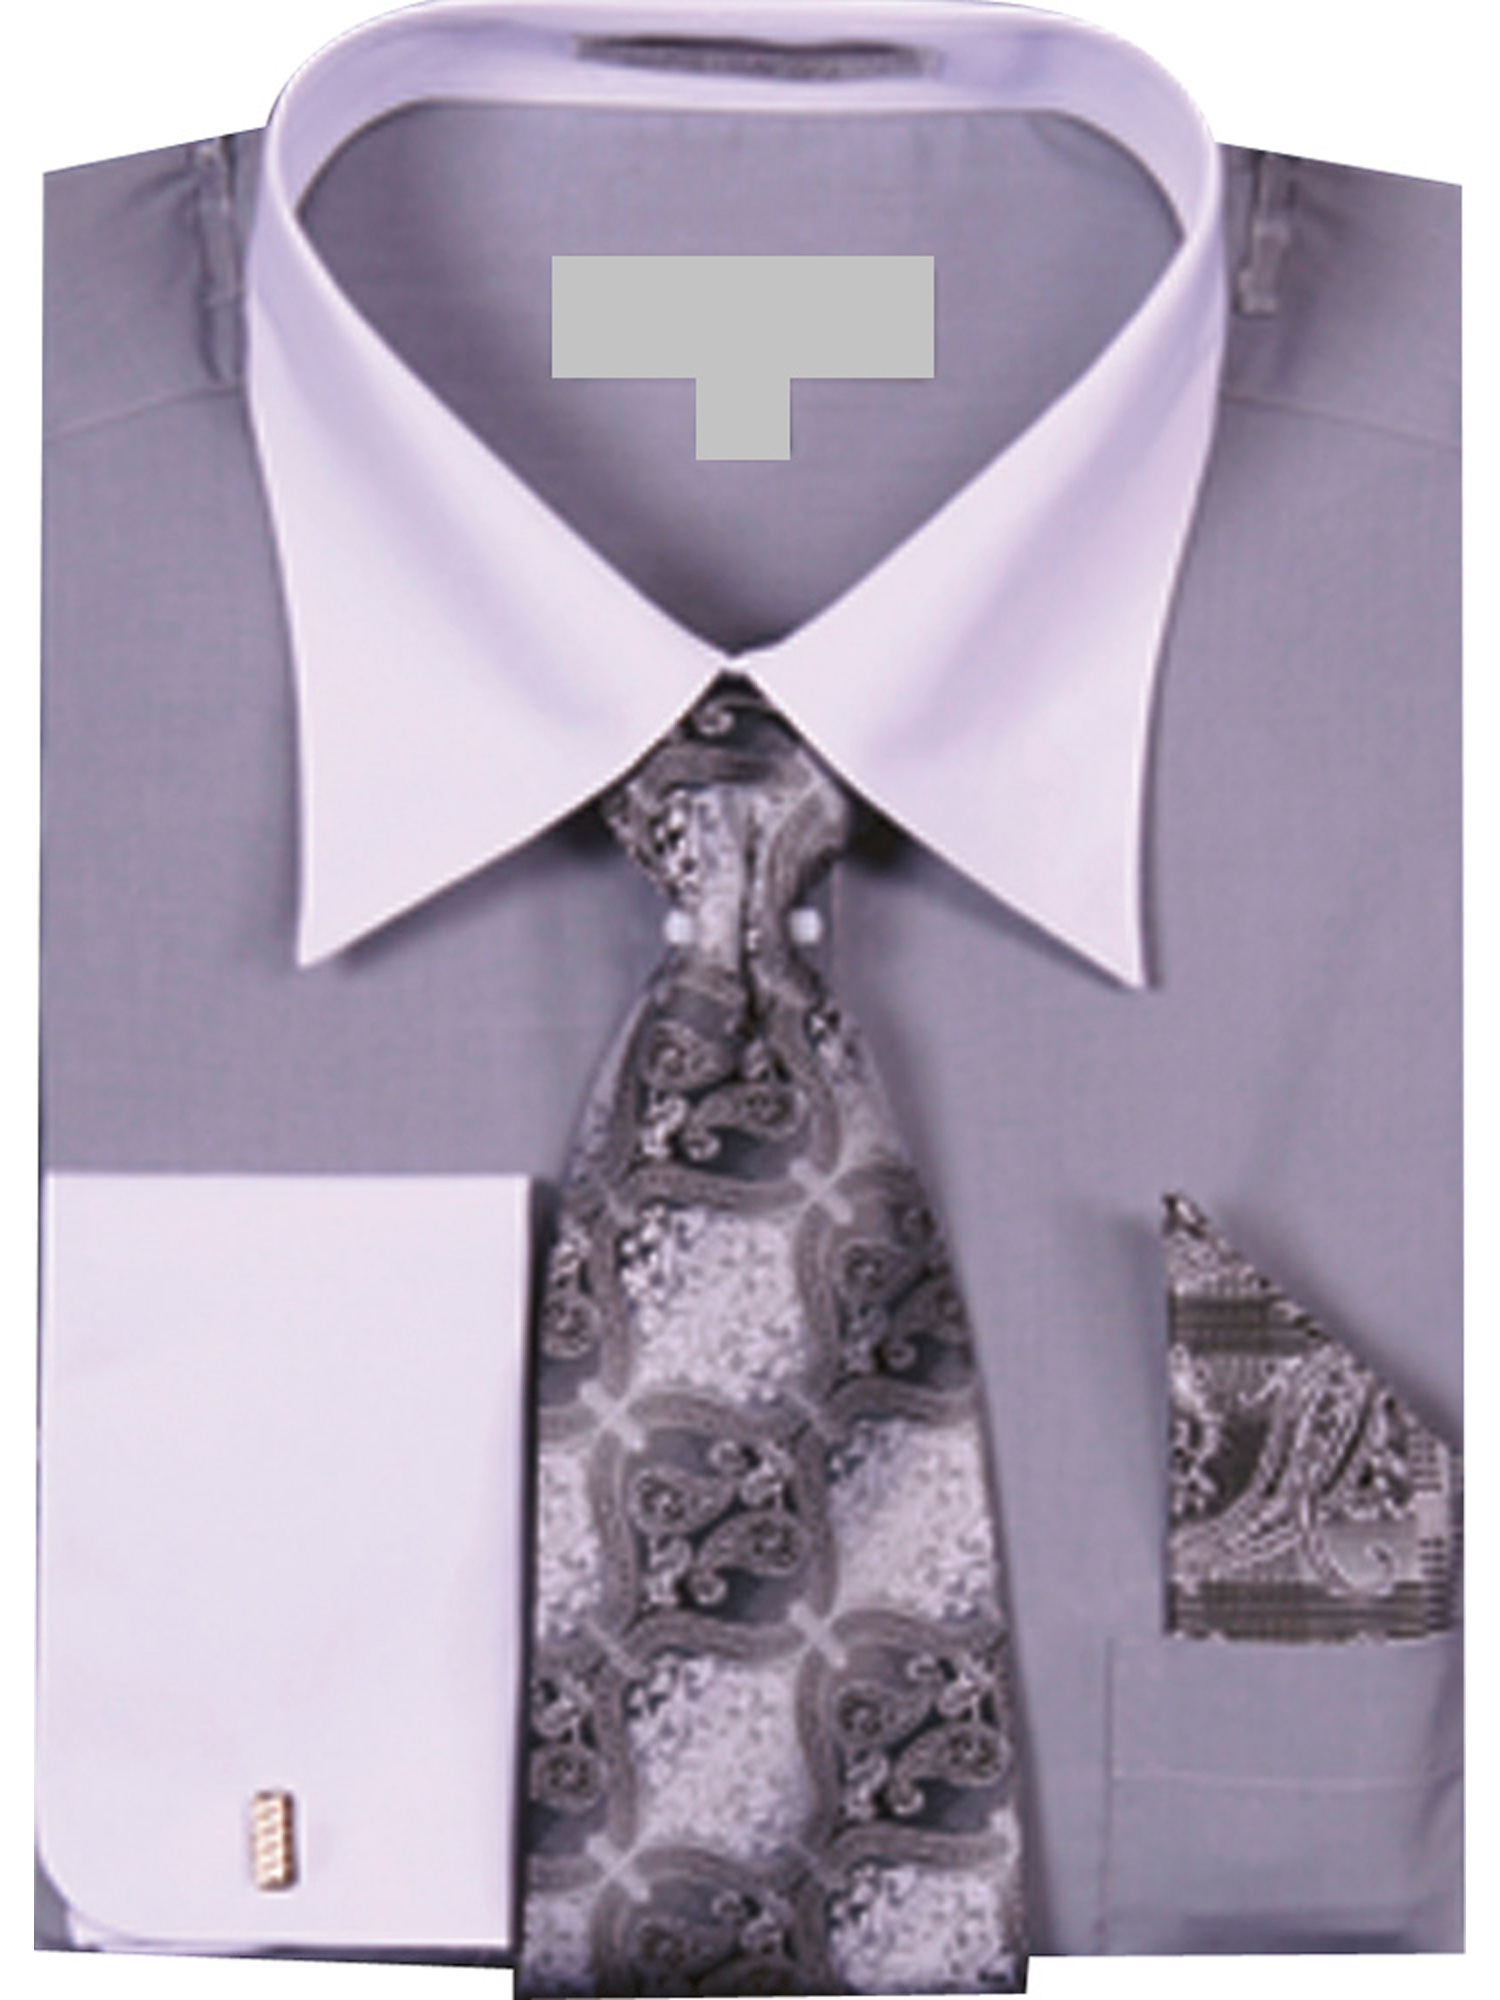 Men's Solid Dress Shirt with a VARYING Tie and Hanky Set with White Collar and French Cuffs